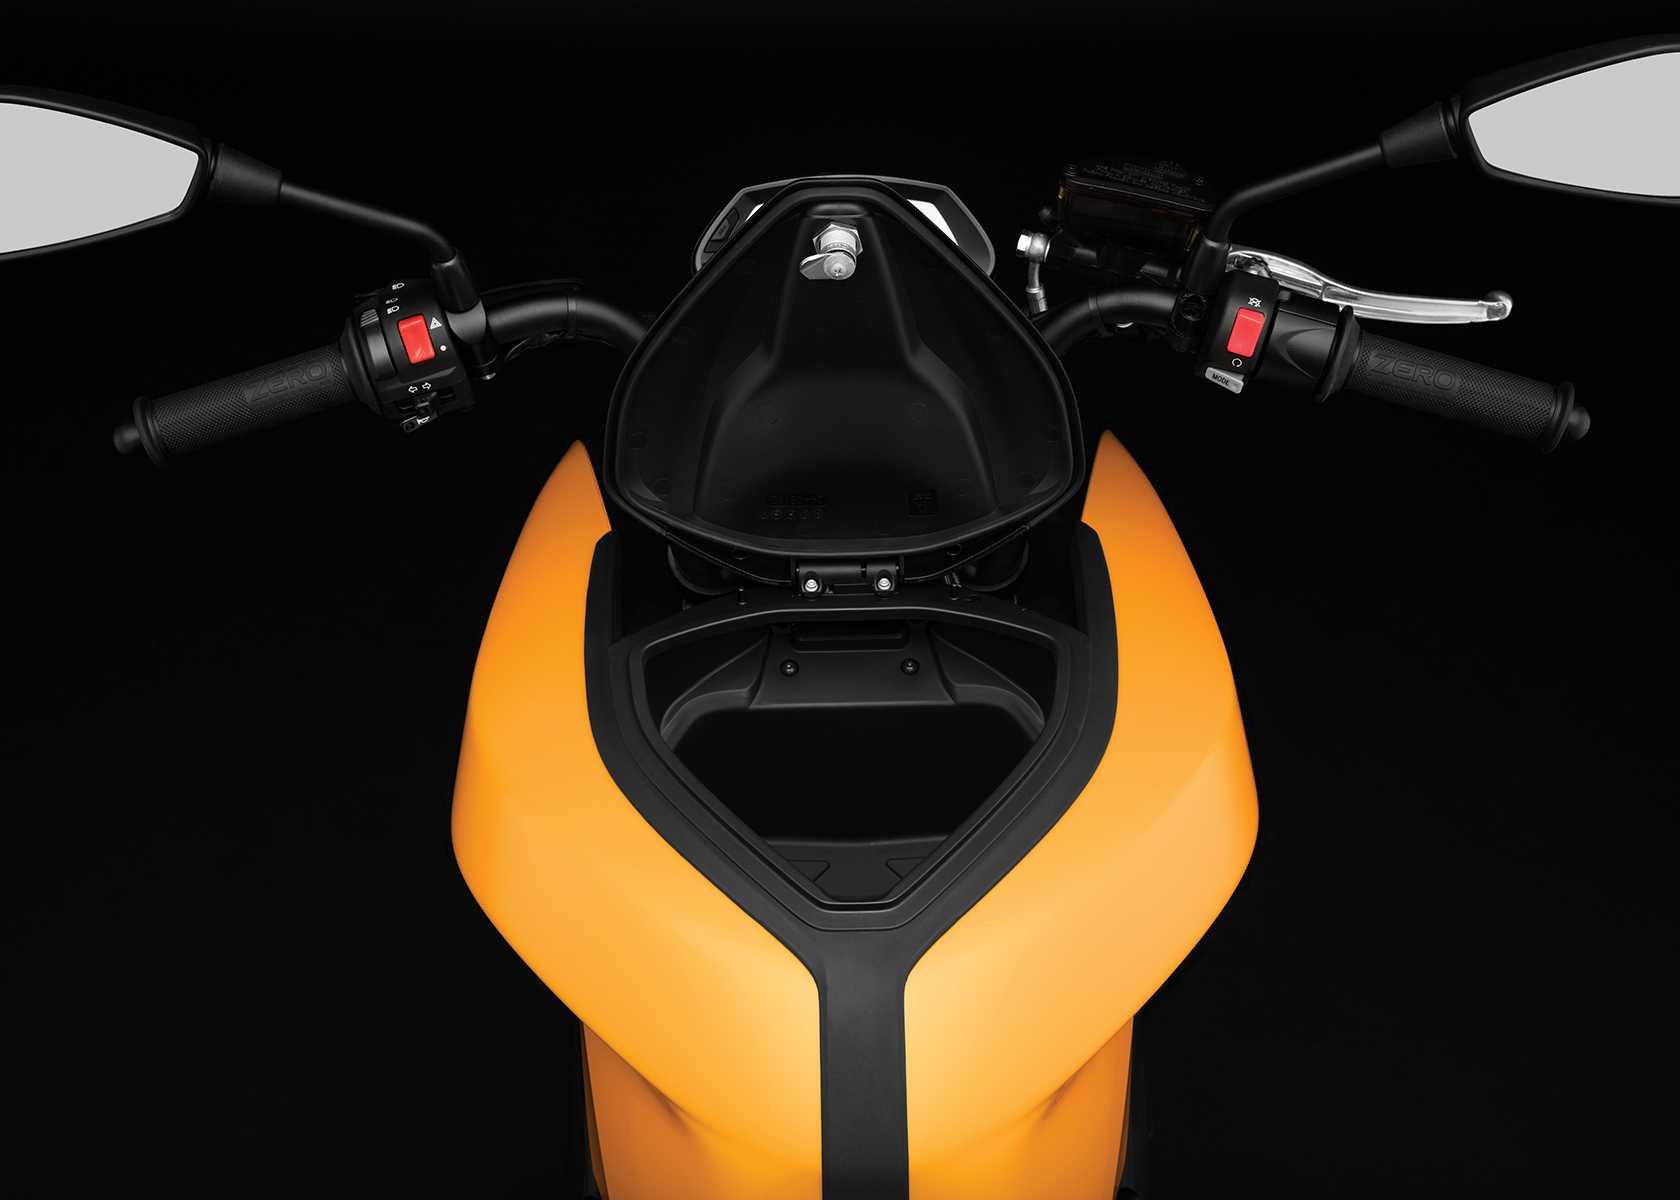 2017 Zero S ZF6.5 Electric Motorcycle: Tank Storage, open